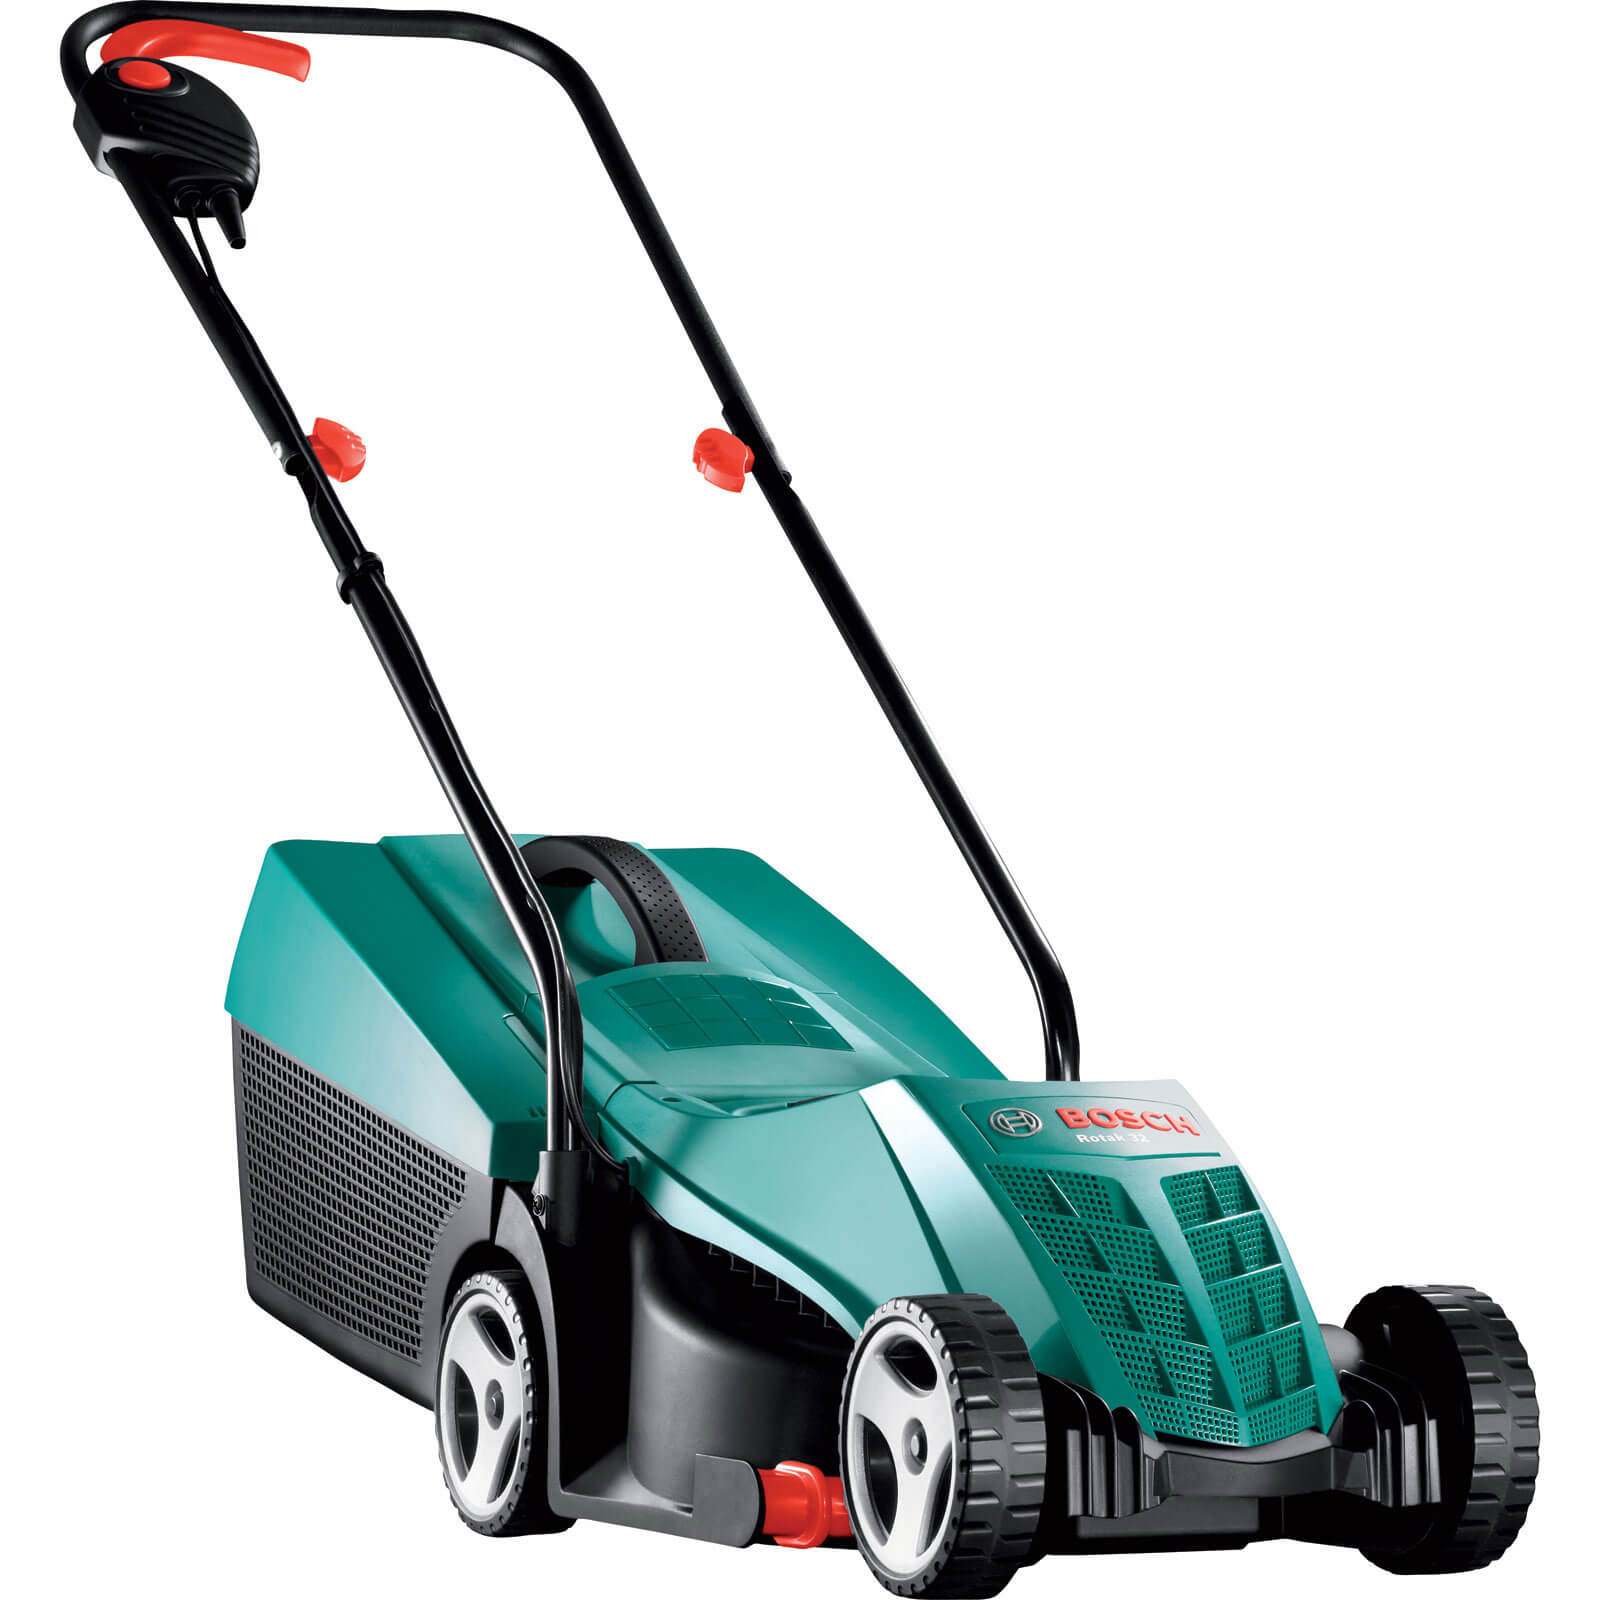 Image of Bosch ROTAK 32 R Rotary Lawnmower 320mm 240v